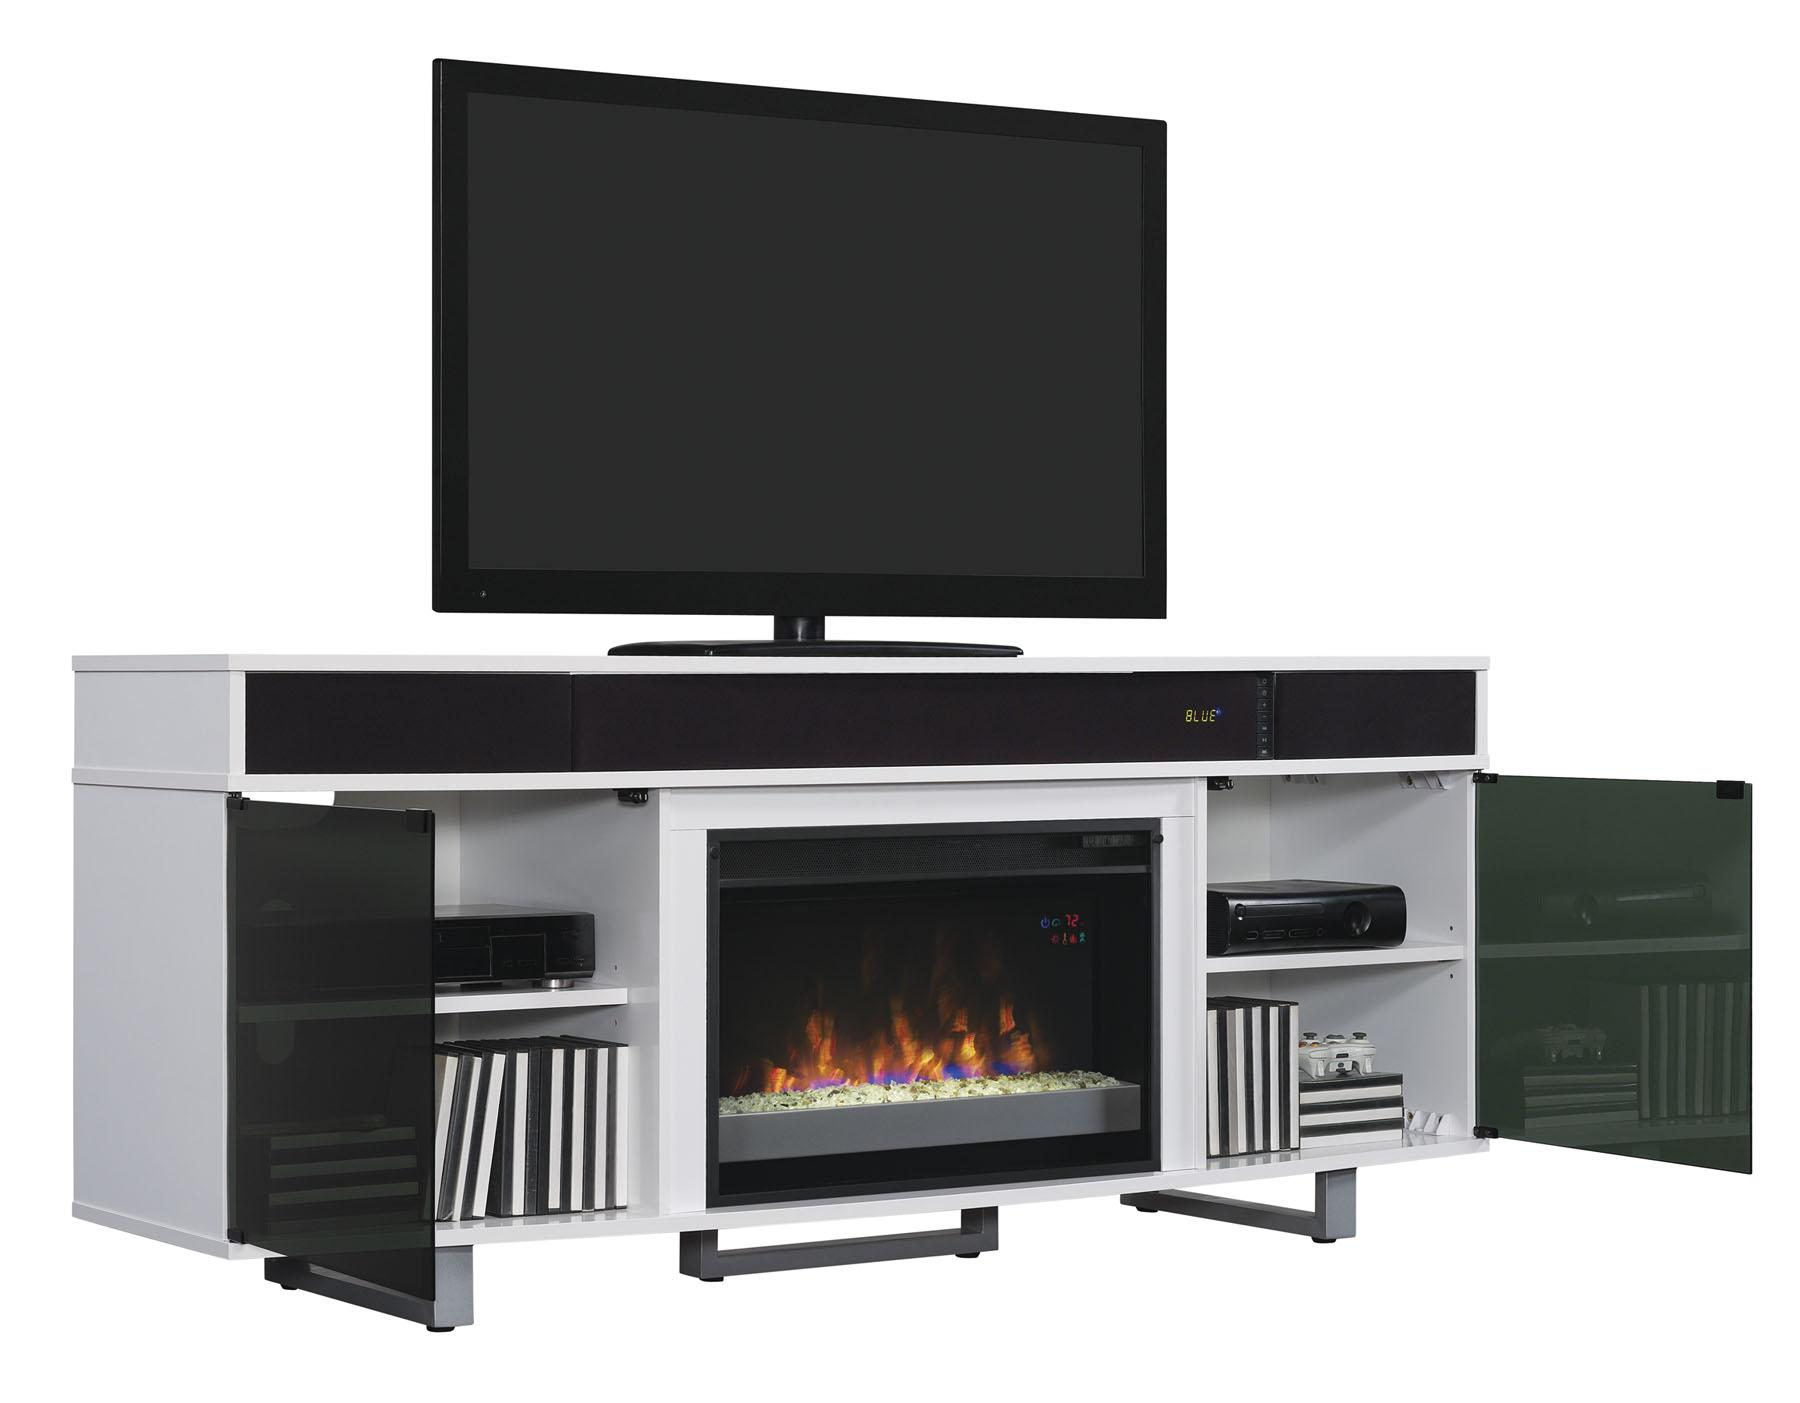 Classicflame 26mms9626 Nw145 Enterprise Tv Stand With Speakers For Tvs Up To 80